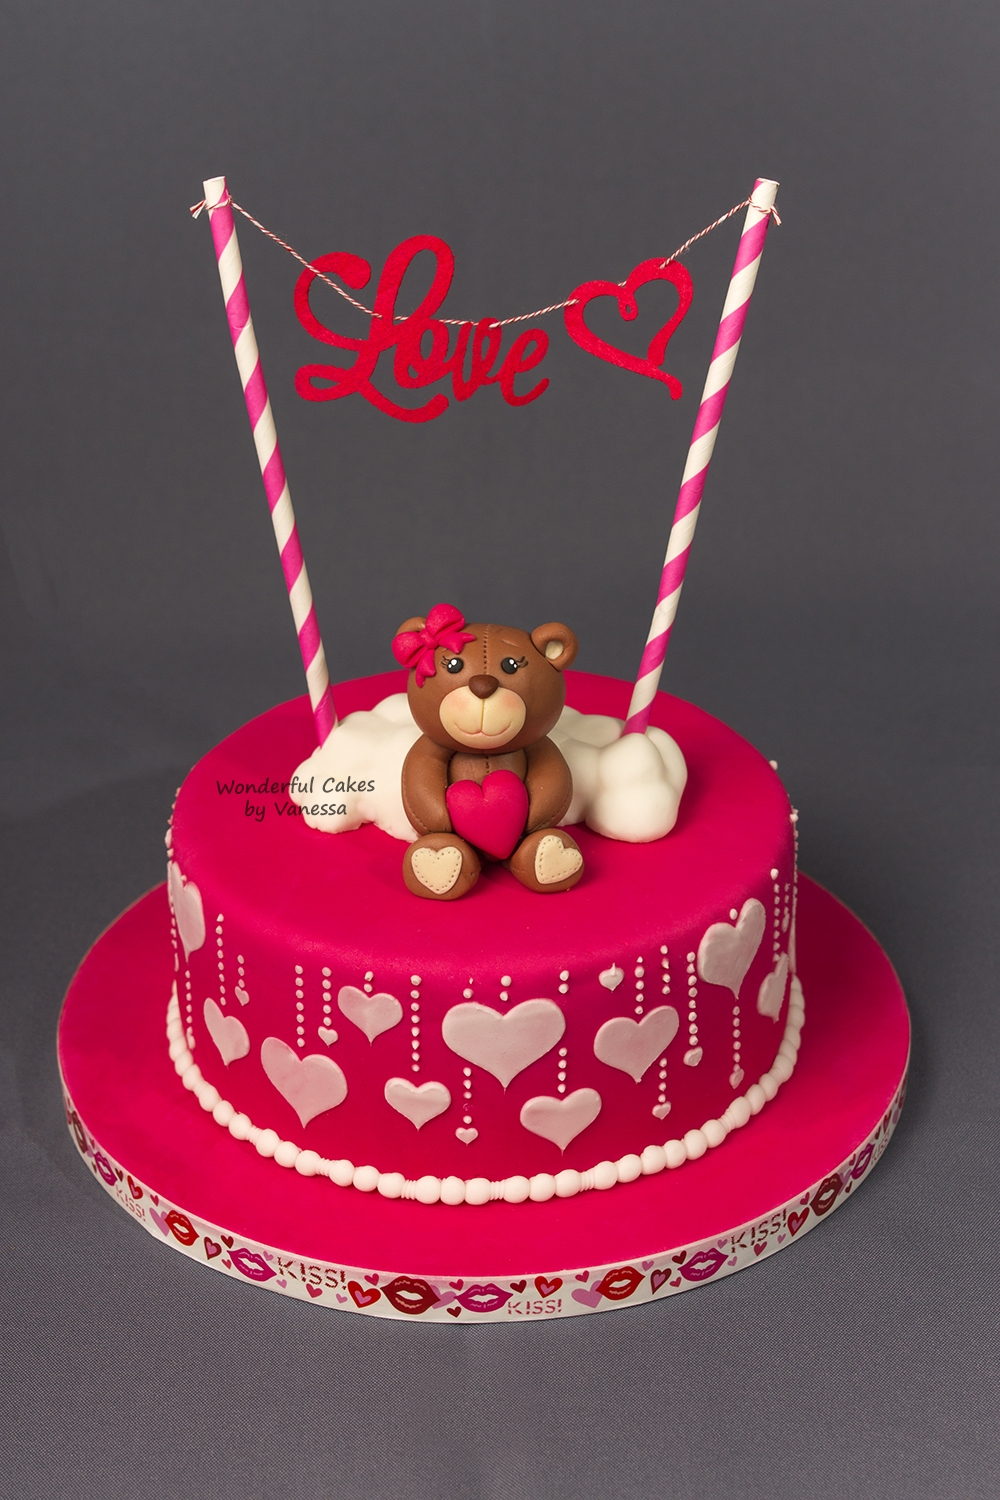 Außergewöhnlich And My Other Project Is Also Finished And Iu0027m Really Happy With The Result;  A Beautiful Valentines Day Cake. The Side Of The Cake Is Made With A  Stencil And ...